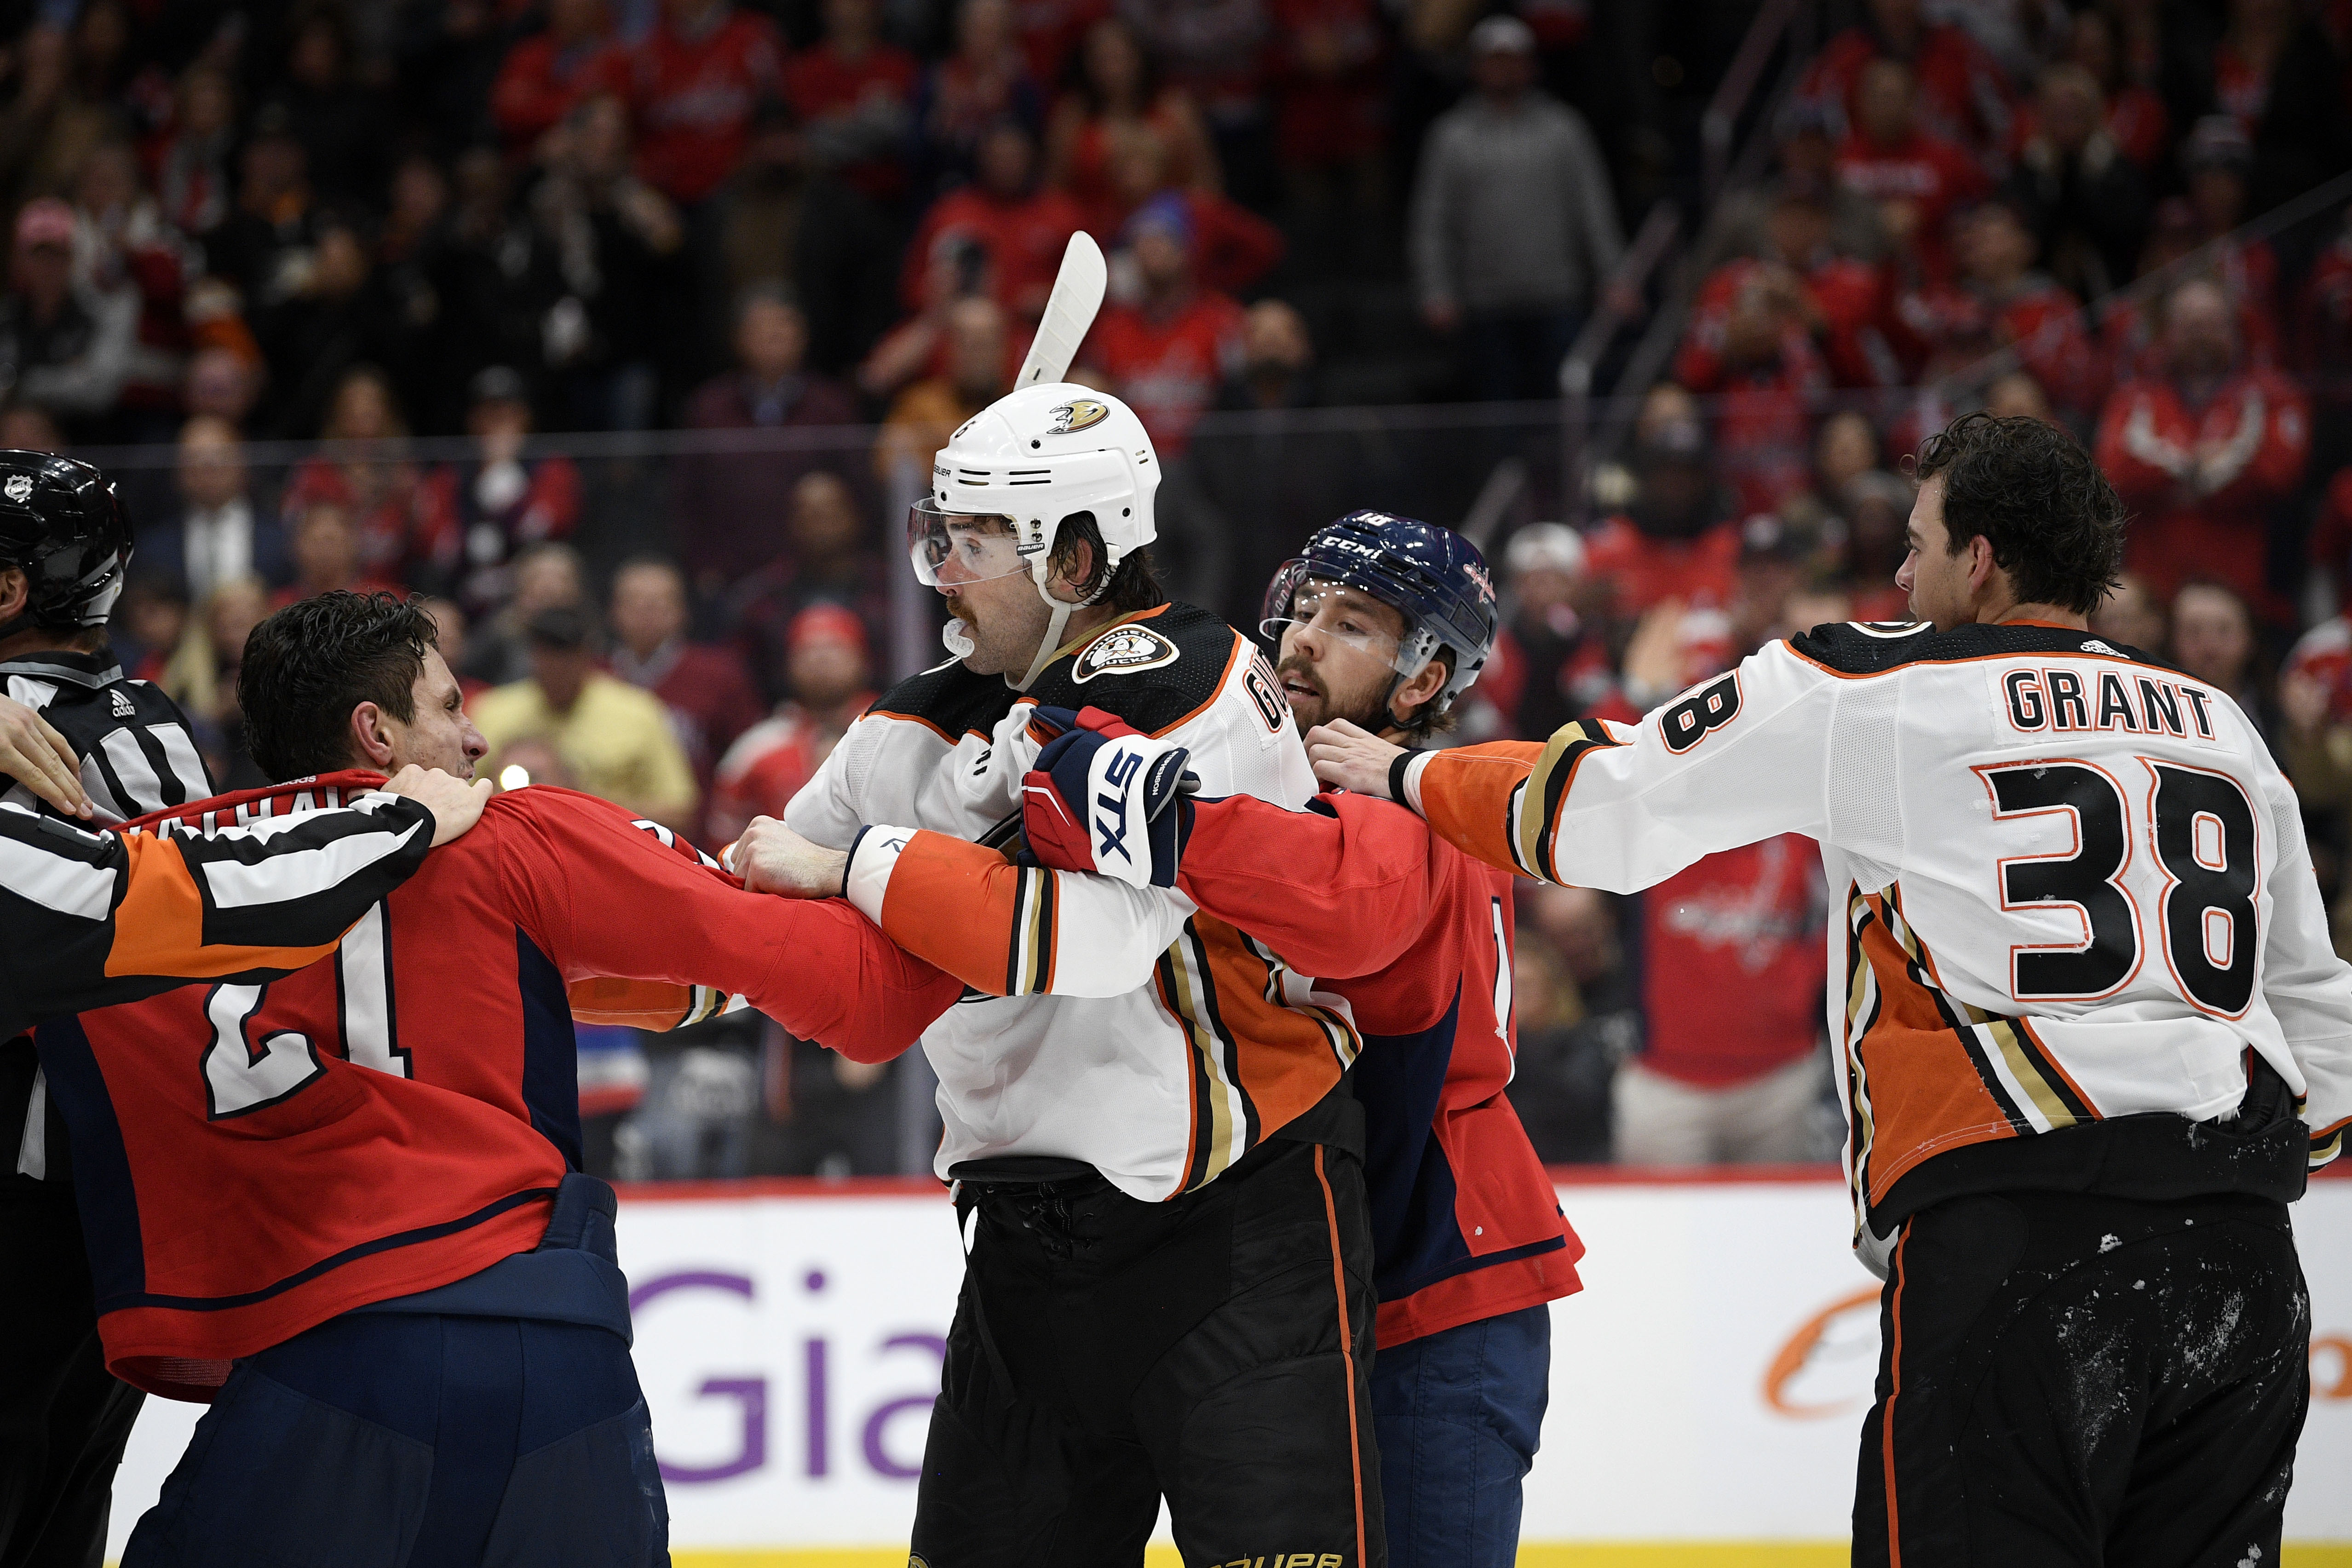 Garnet Hathaway, Capitals forward, suspended three games for spitting